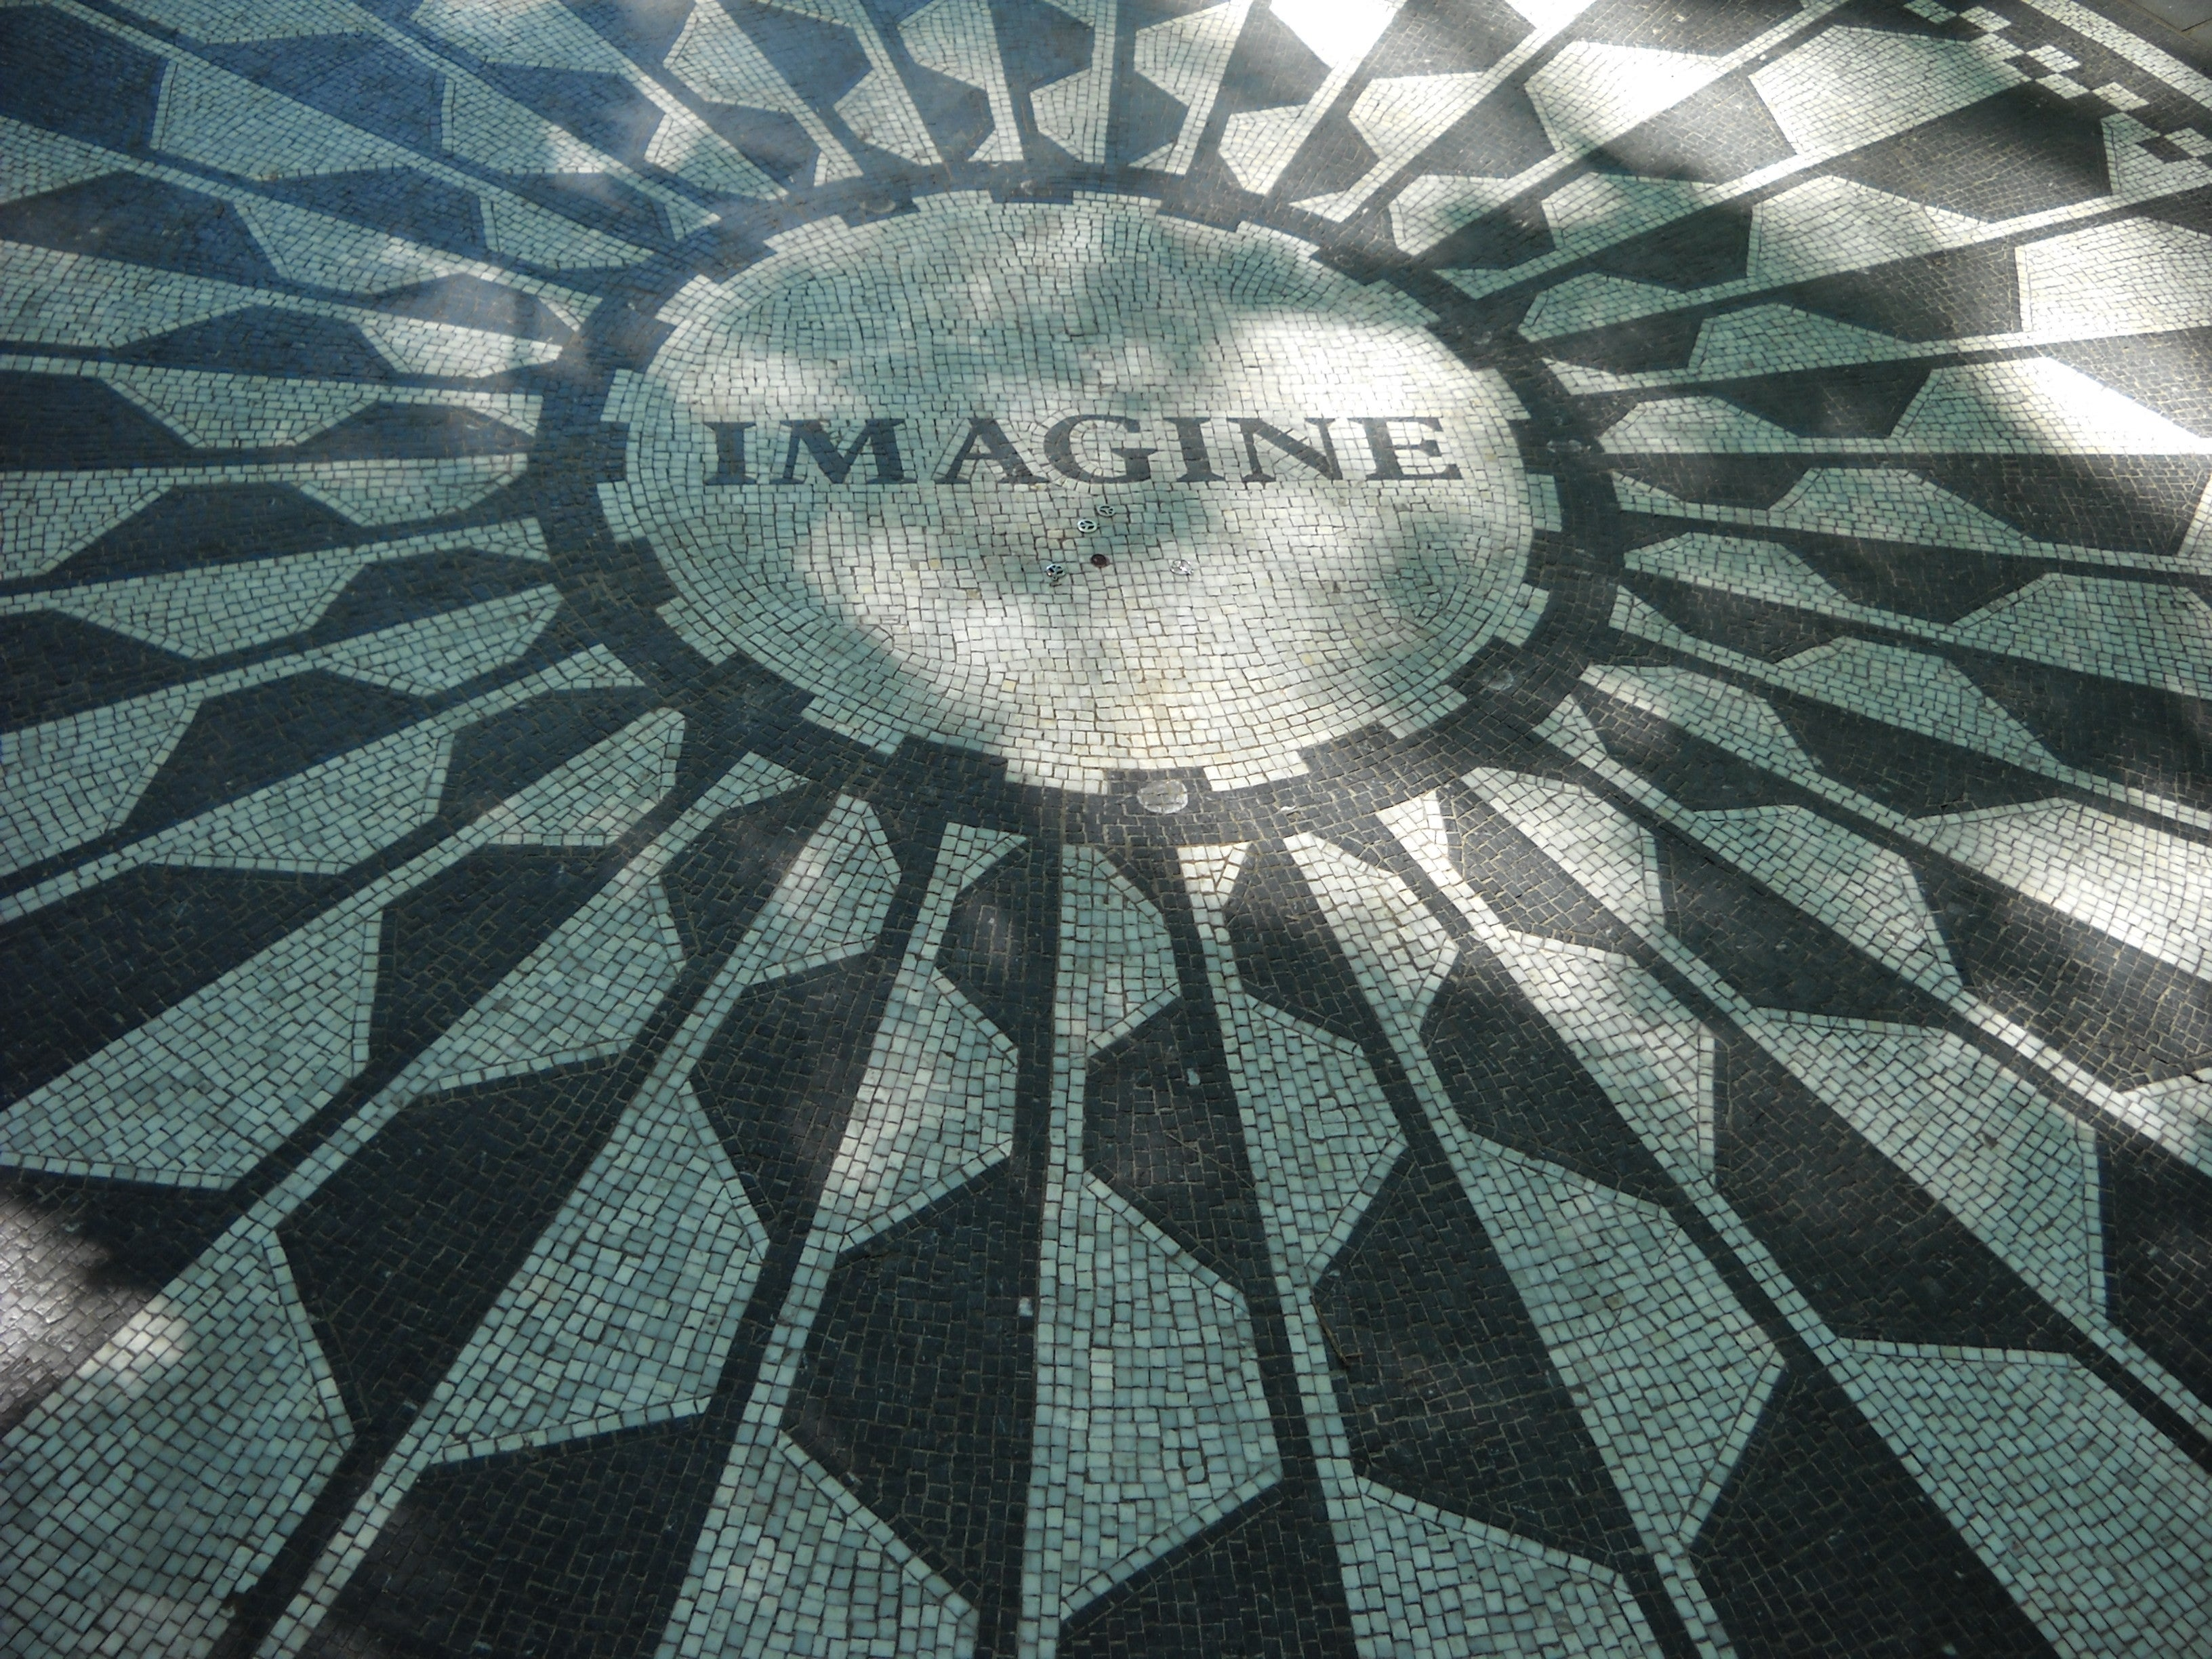 Peinado en Strawberry Fields - monumento a John Lennon